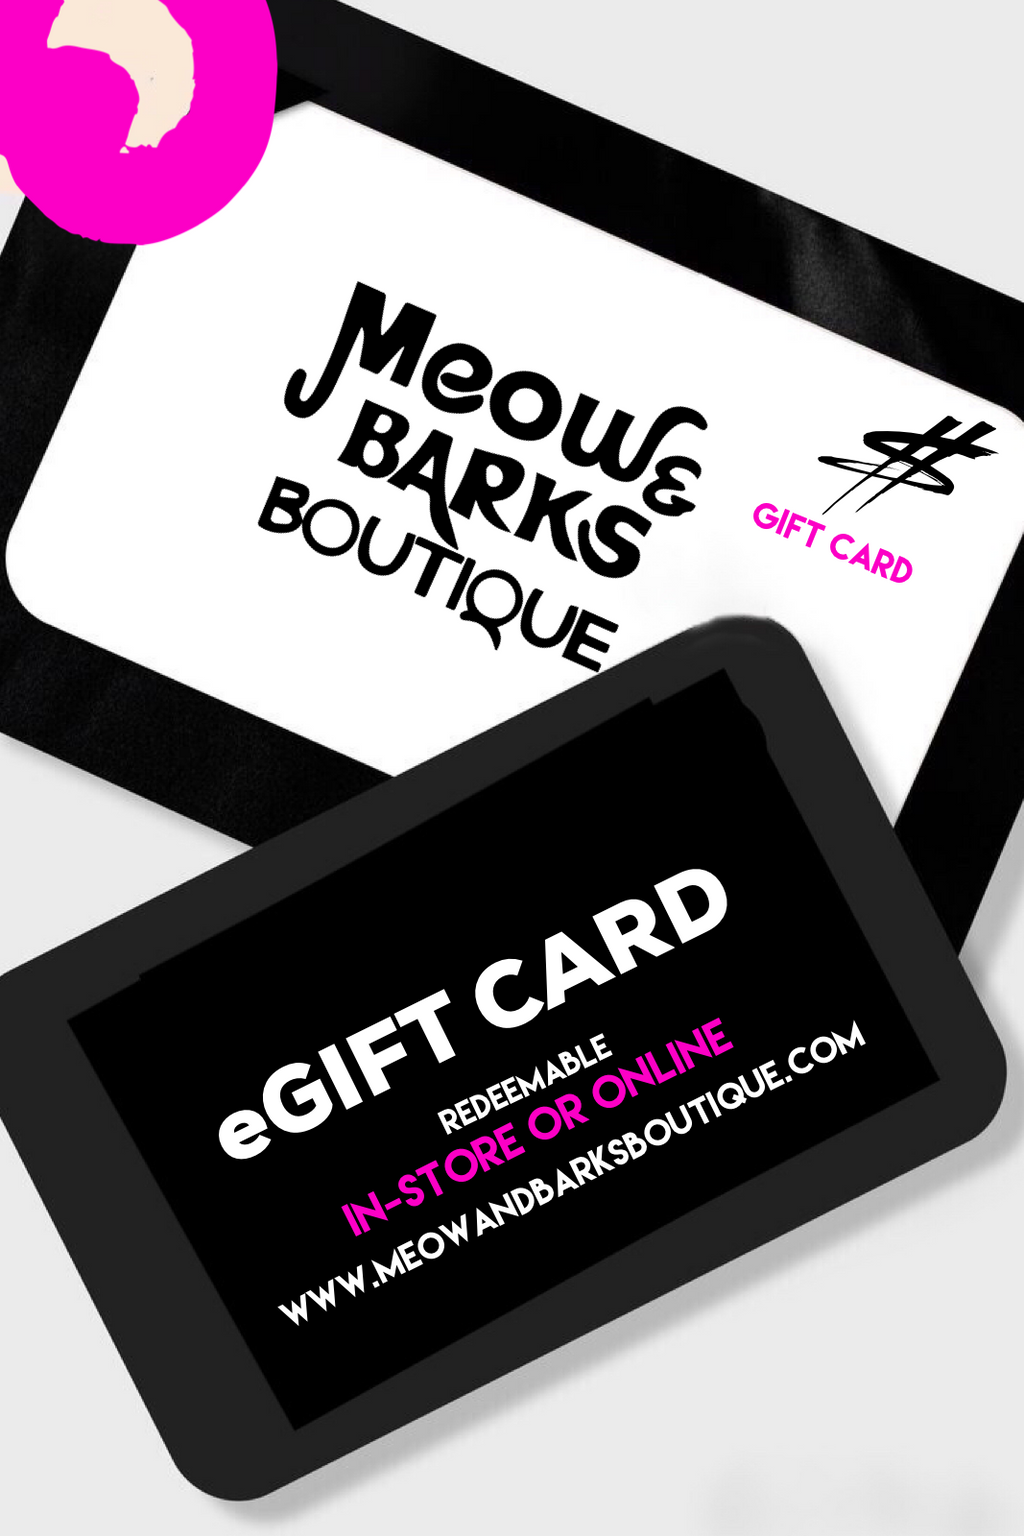 Meow and Barks Boutique Gift Card